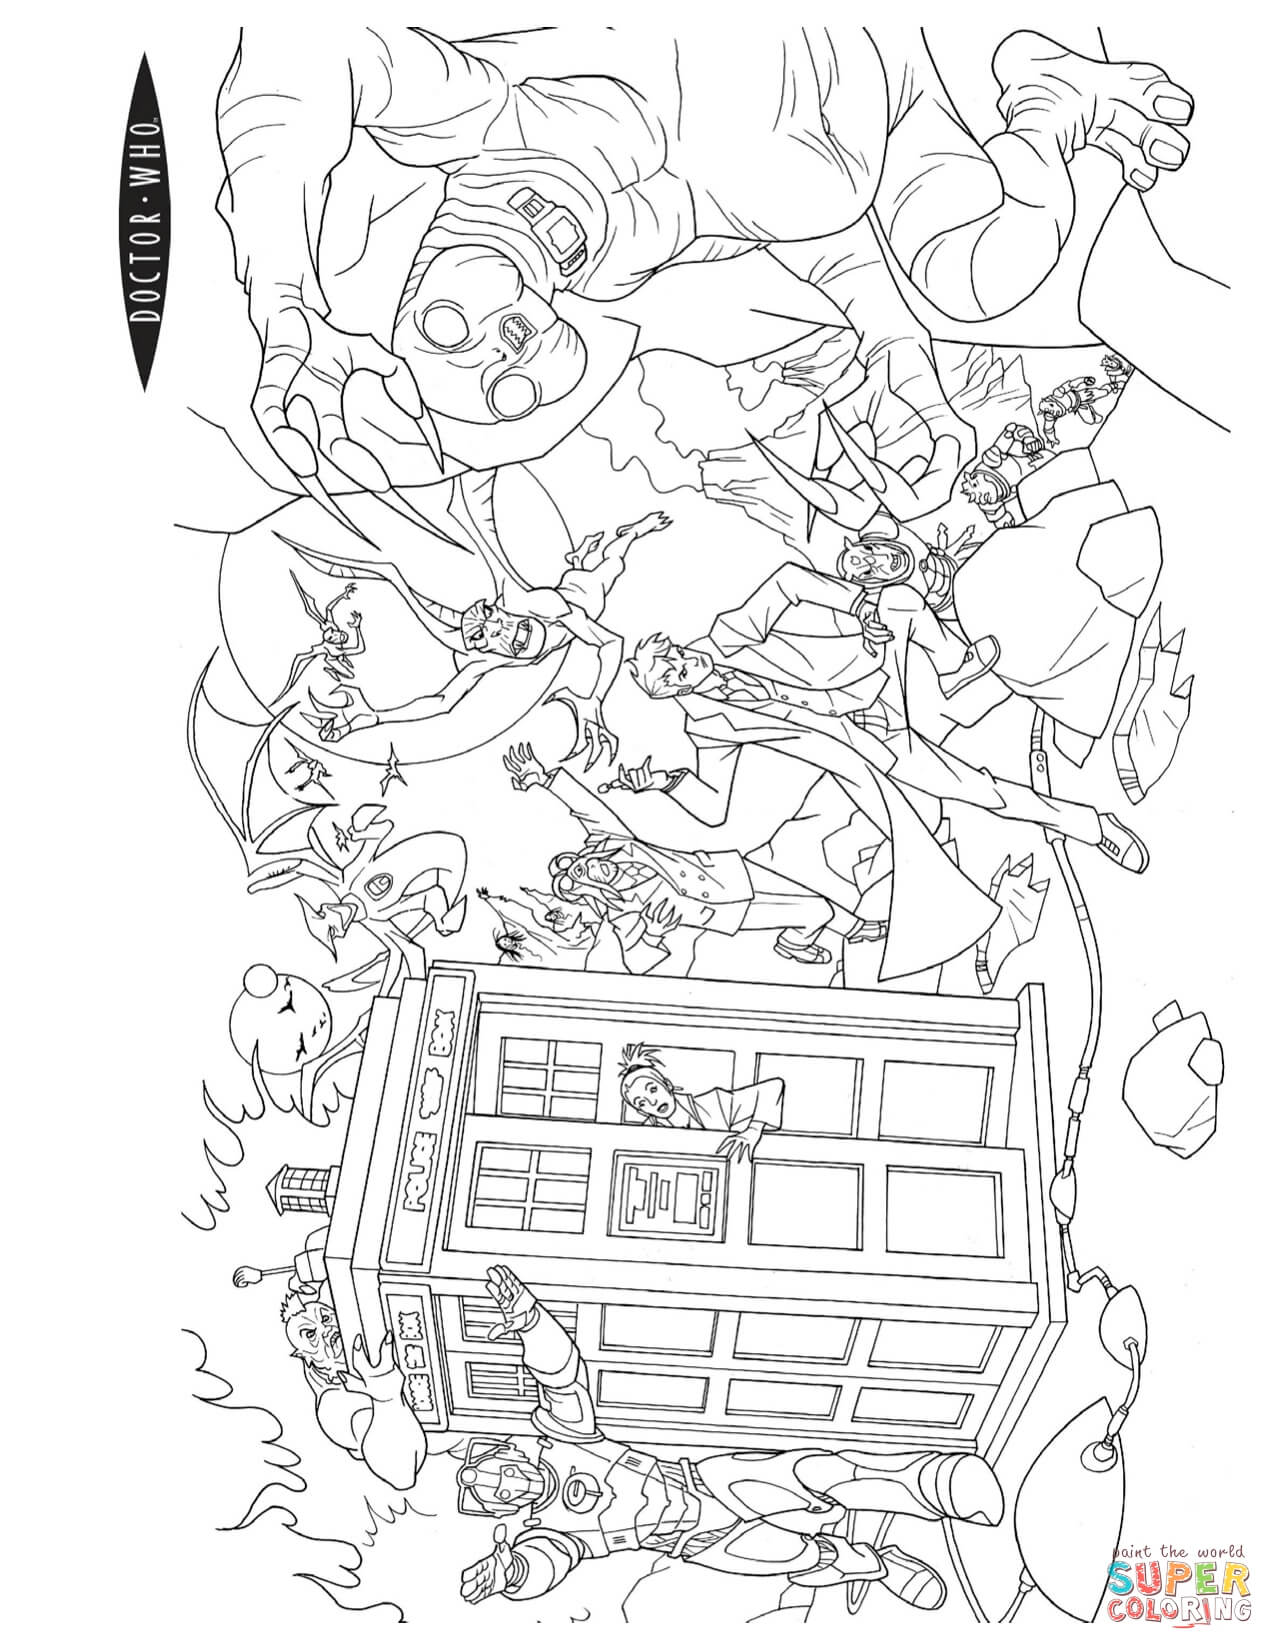 doctor who pictures to colour doctor who39s world tv shows adult coloring pages colour to who pictures doctor